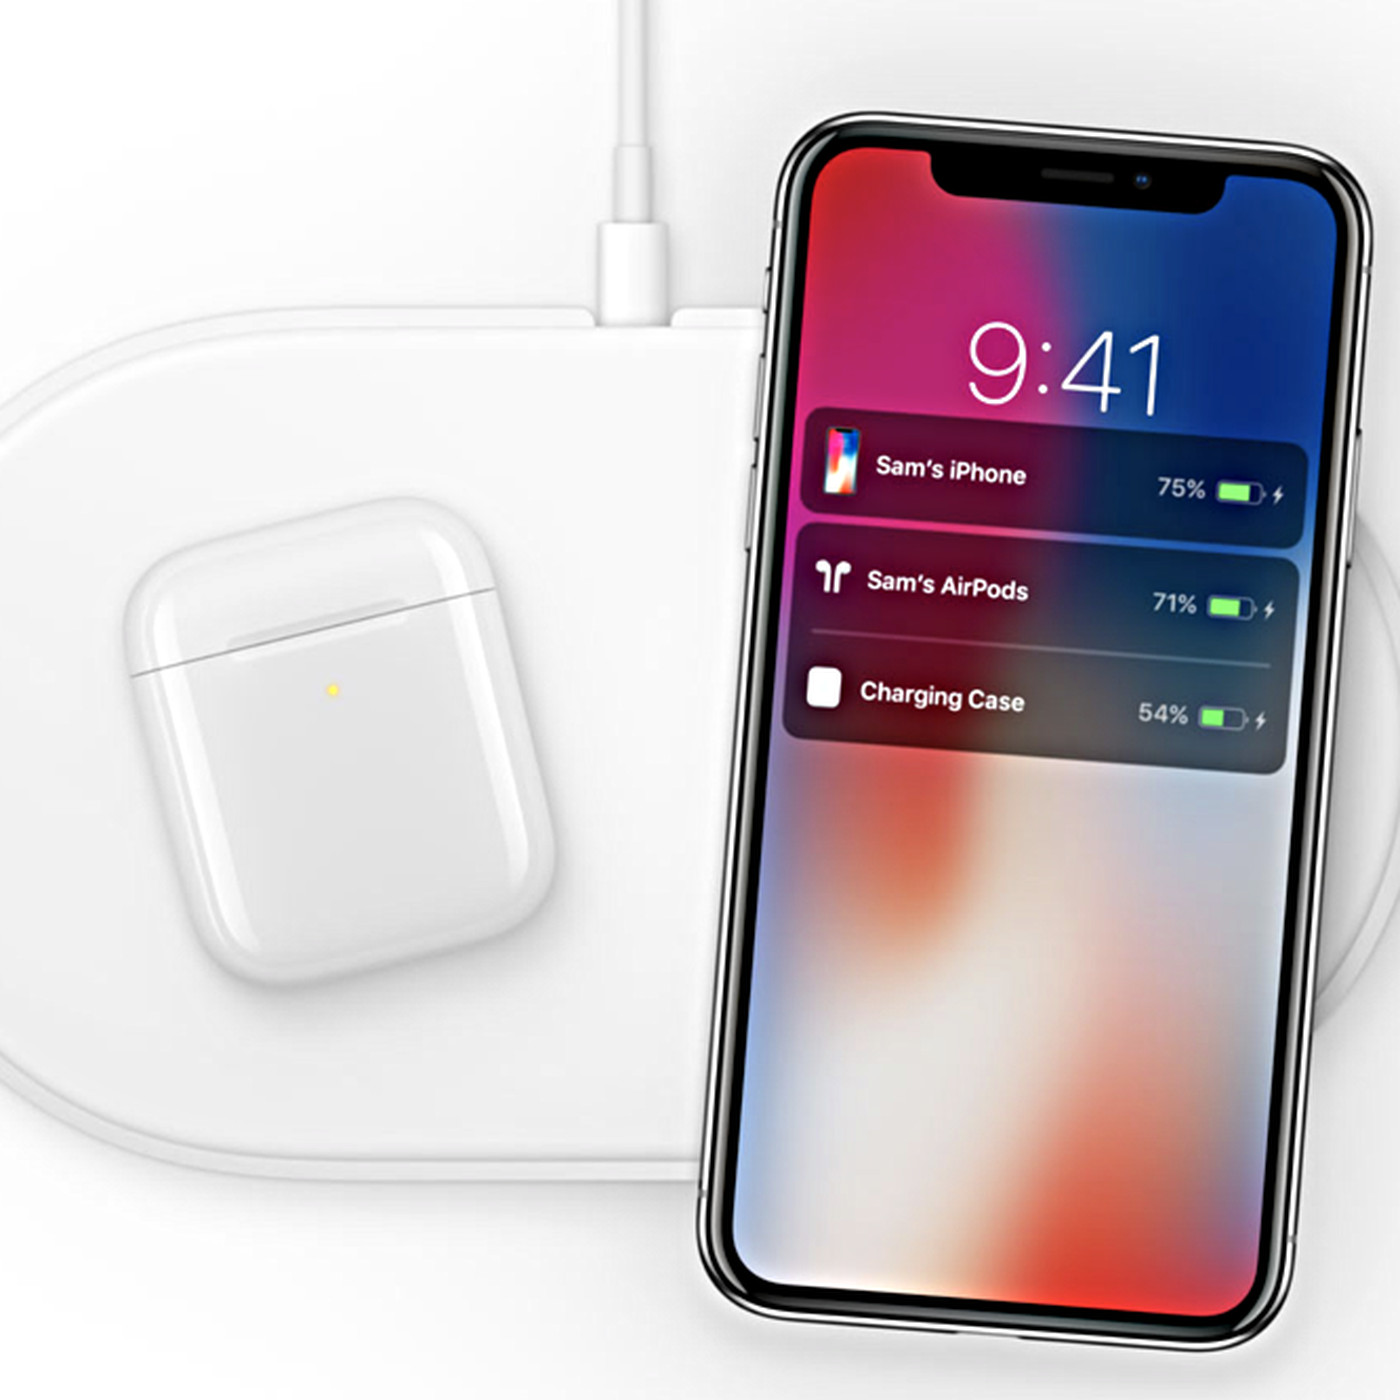 theverge.com - Andrew Liptak - Apple's AirPower wireless charging mat is rumored to be in production